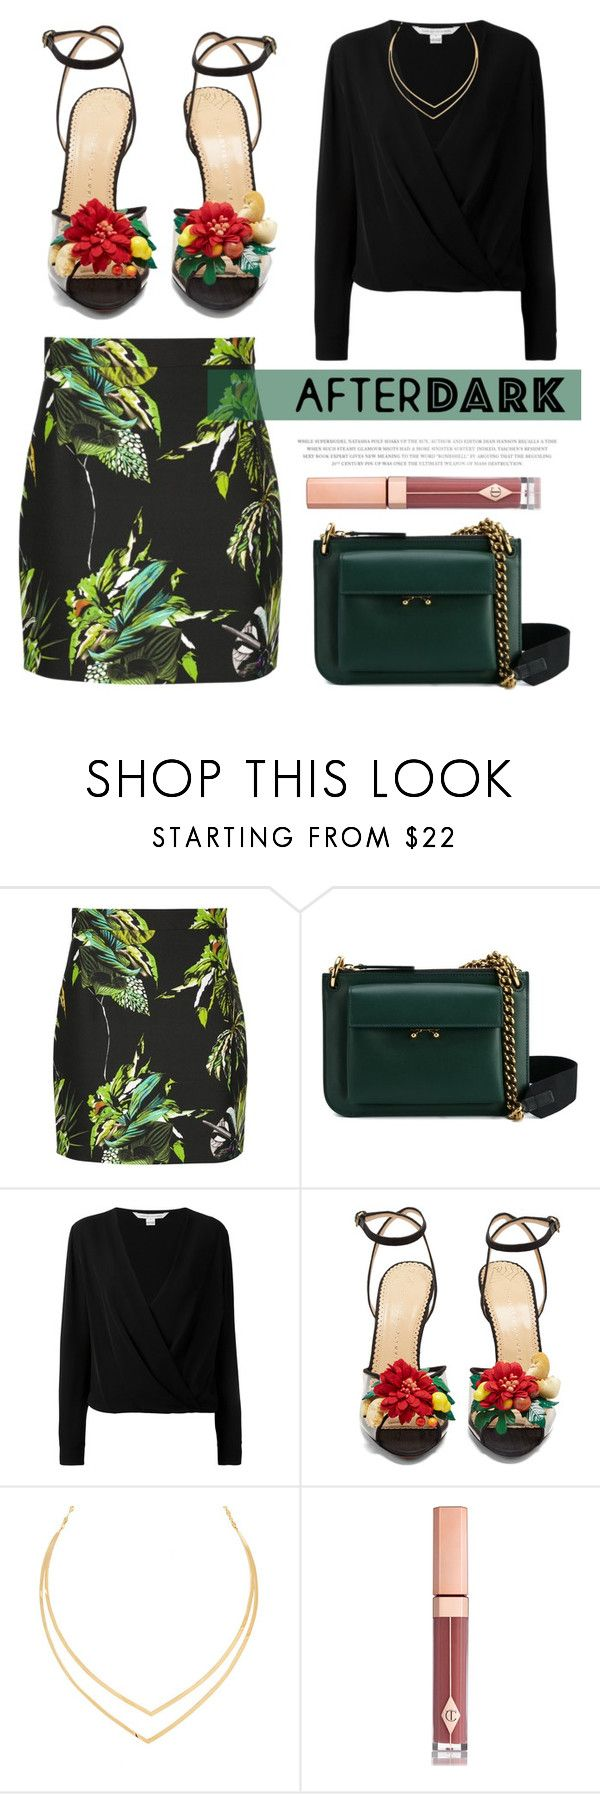 """""""Copacabana"""" by blueyed ❤ liked on Polyvore featuring Proenza Schouler, Marni, Diane Von Furstenberg, Charlotte Olympia, Lana and Charlotte Tilbury"""